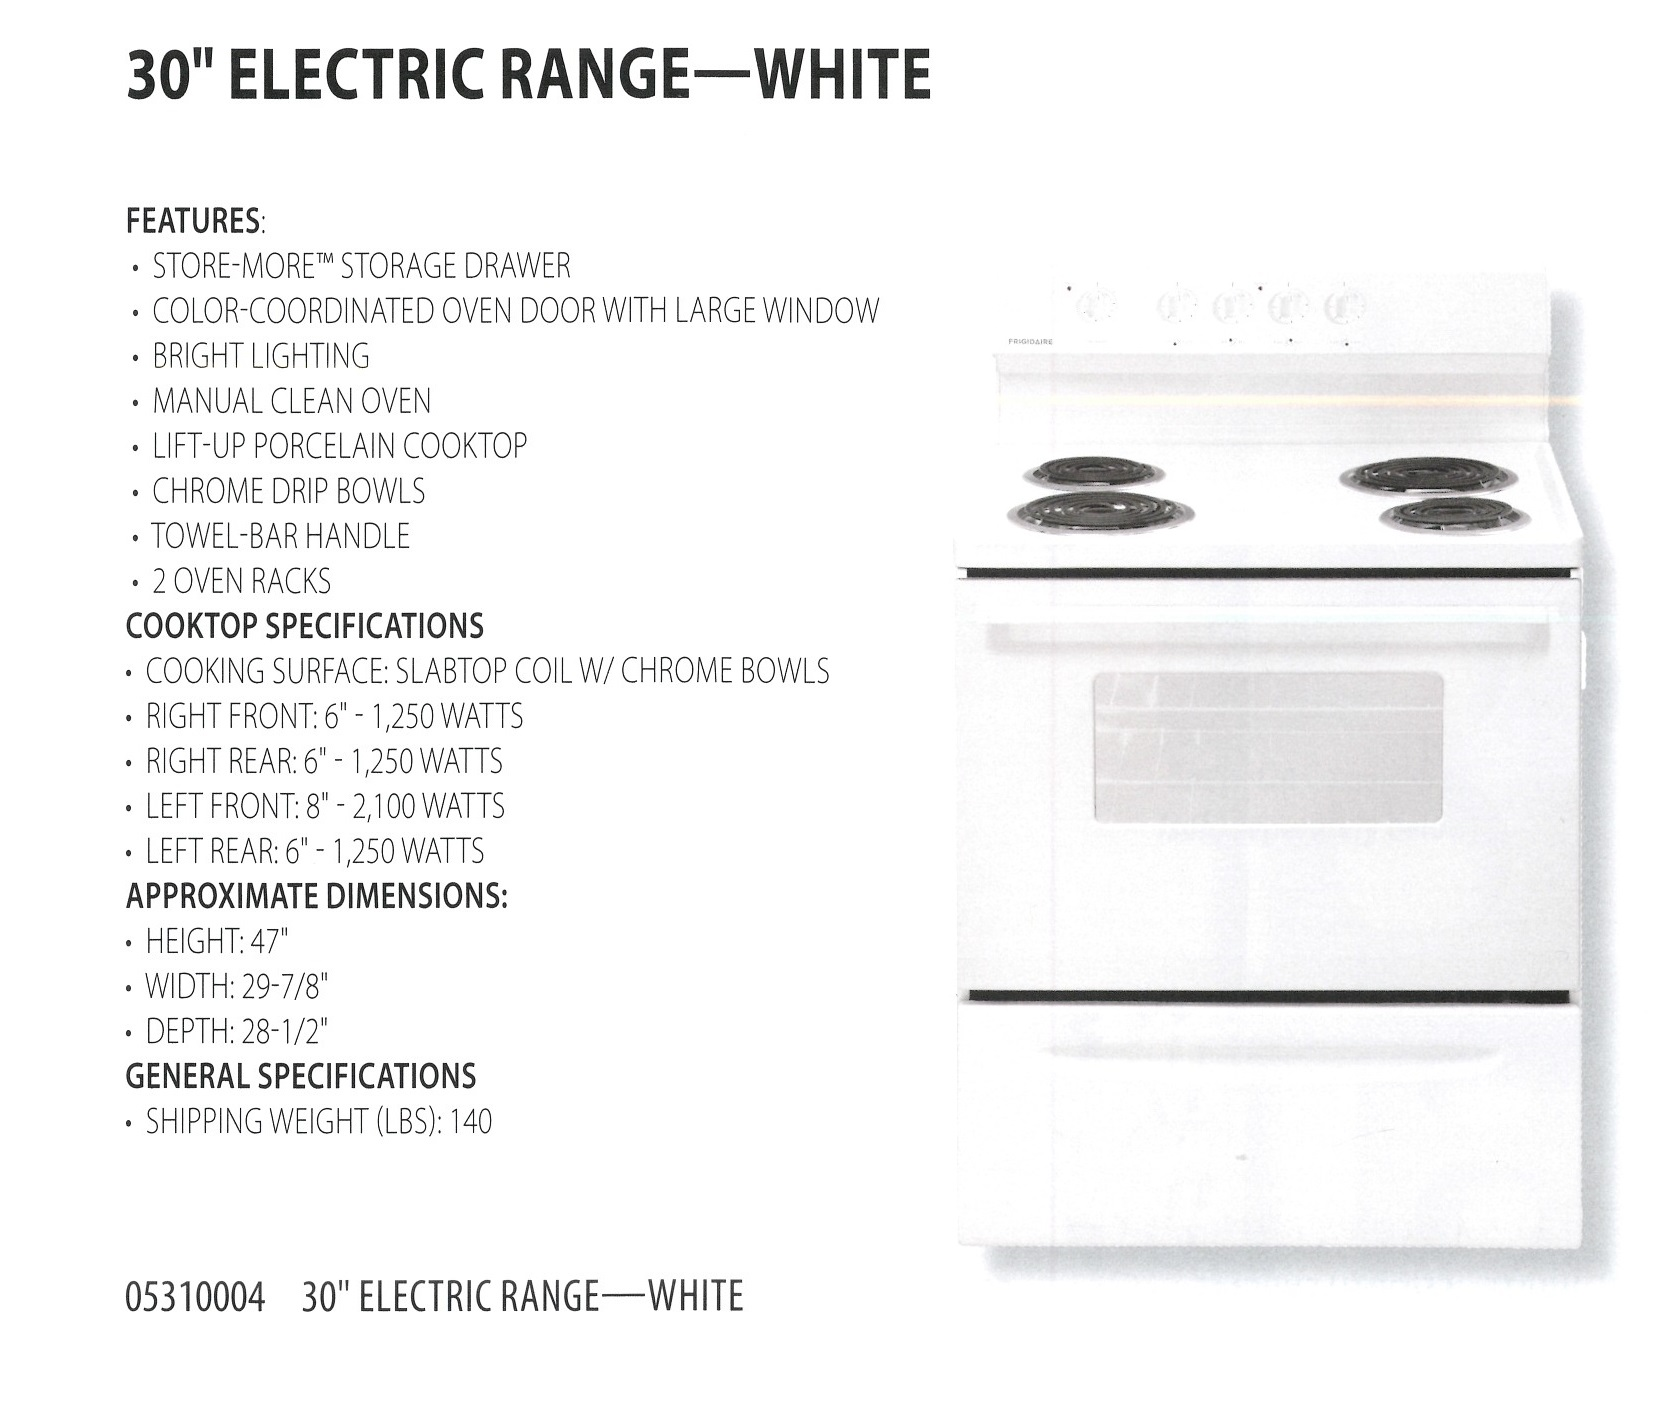 05310004 30 INCH ELECTRIC RANGE WHITE